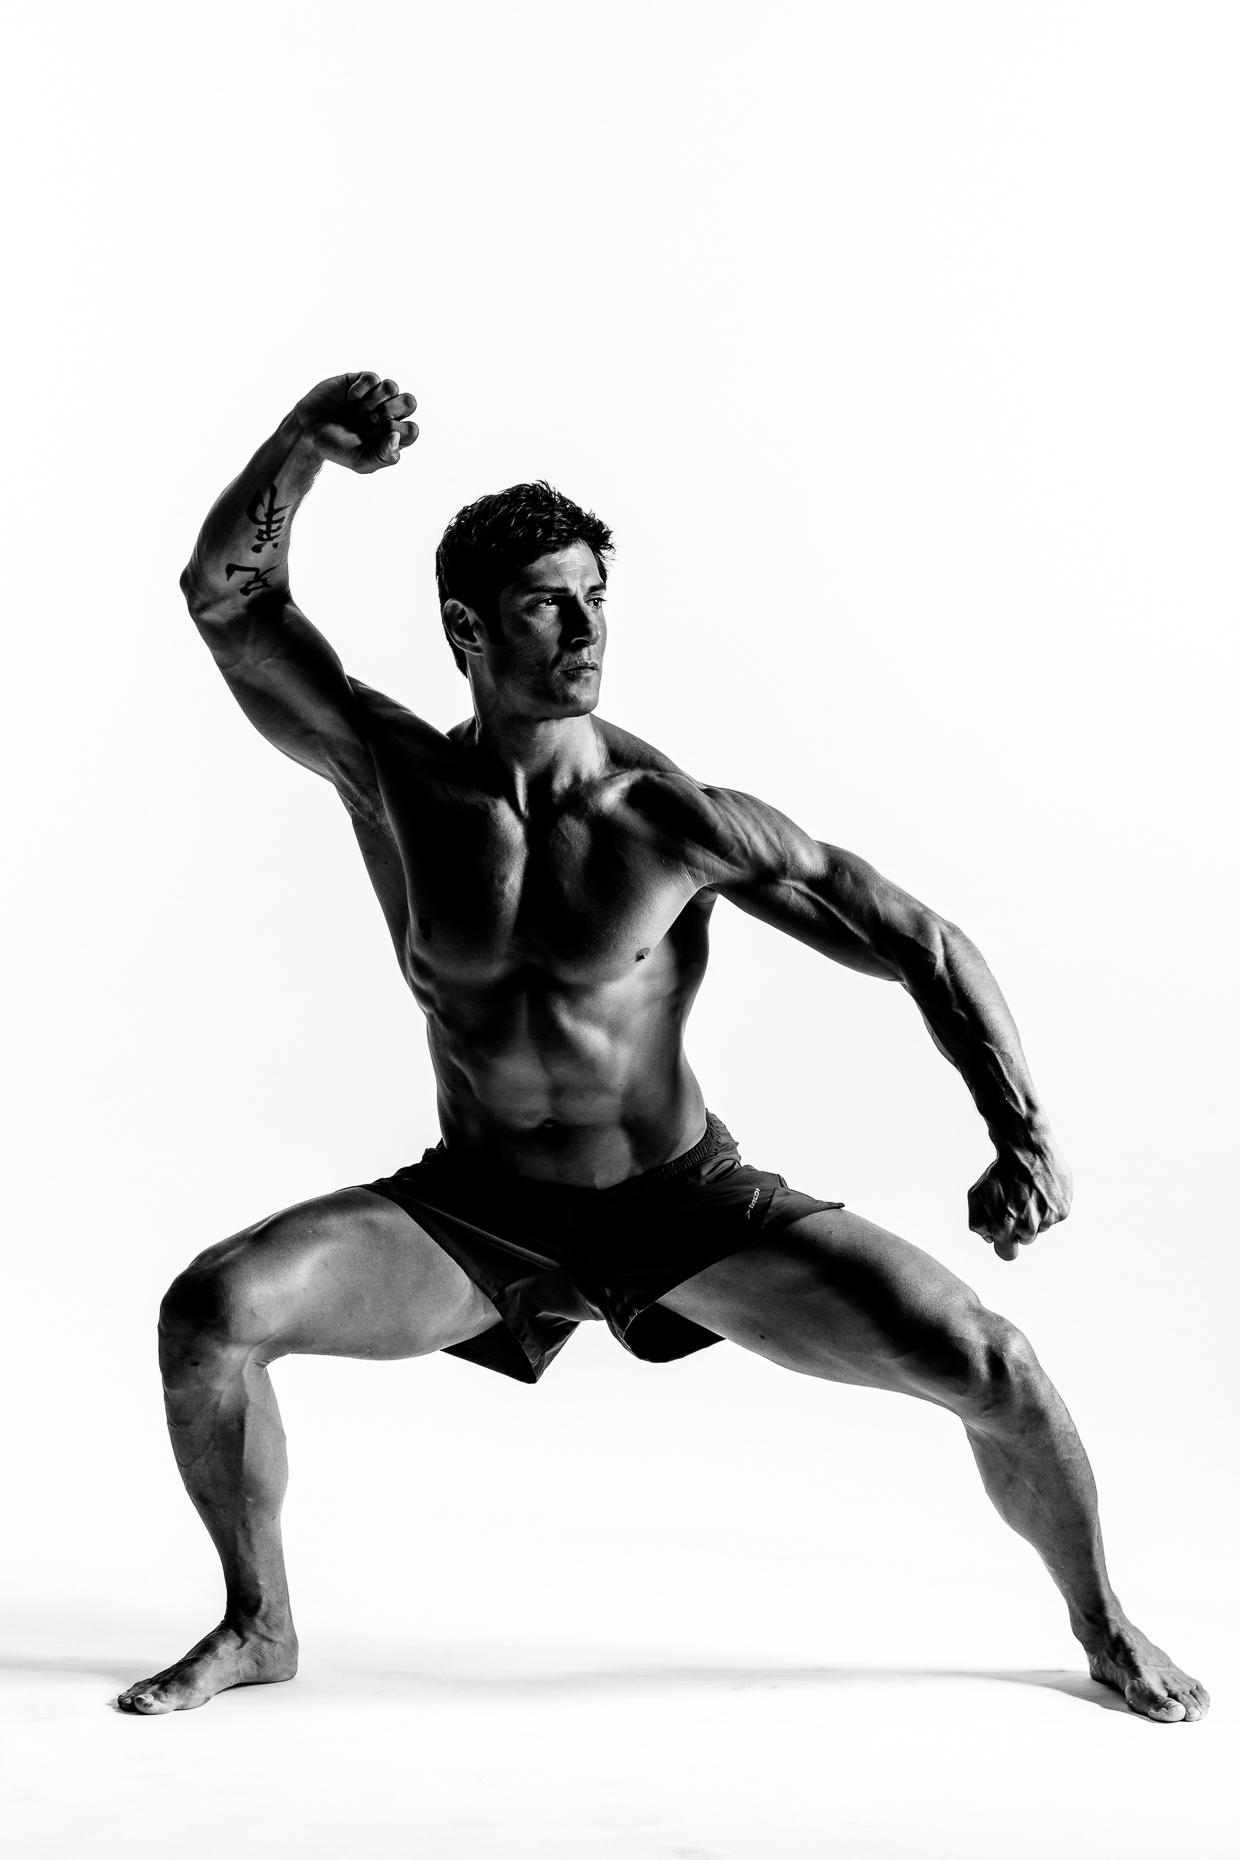 B&W on white background of Rudy Reyes martial arts instructor in warrior pose by andy batt